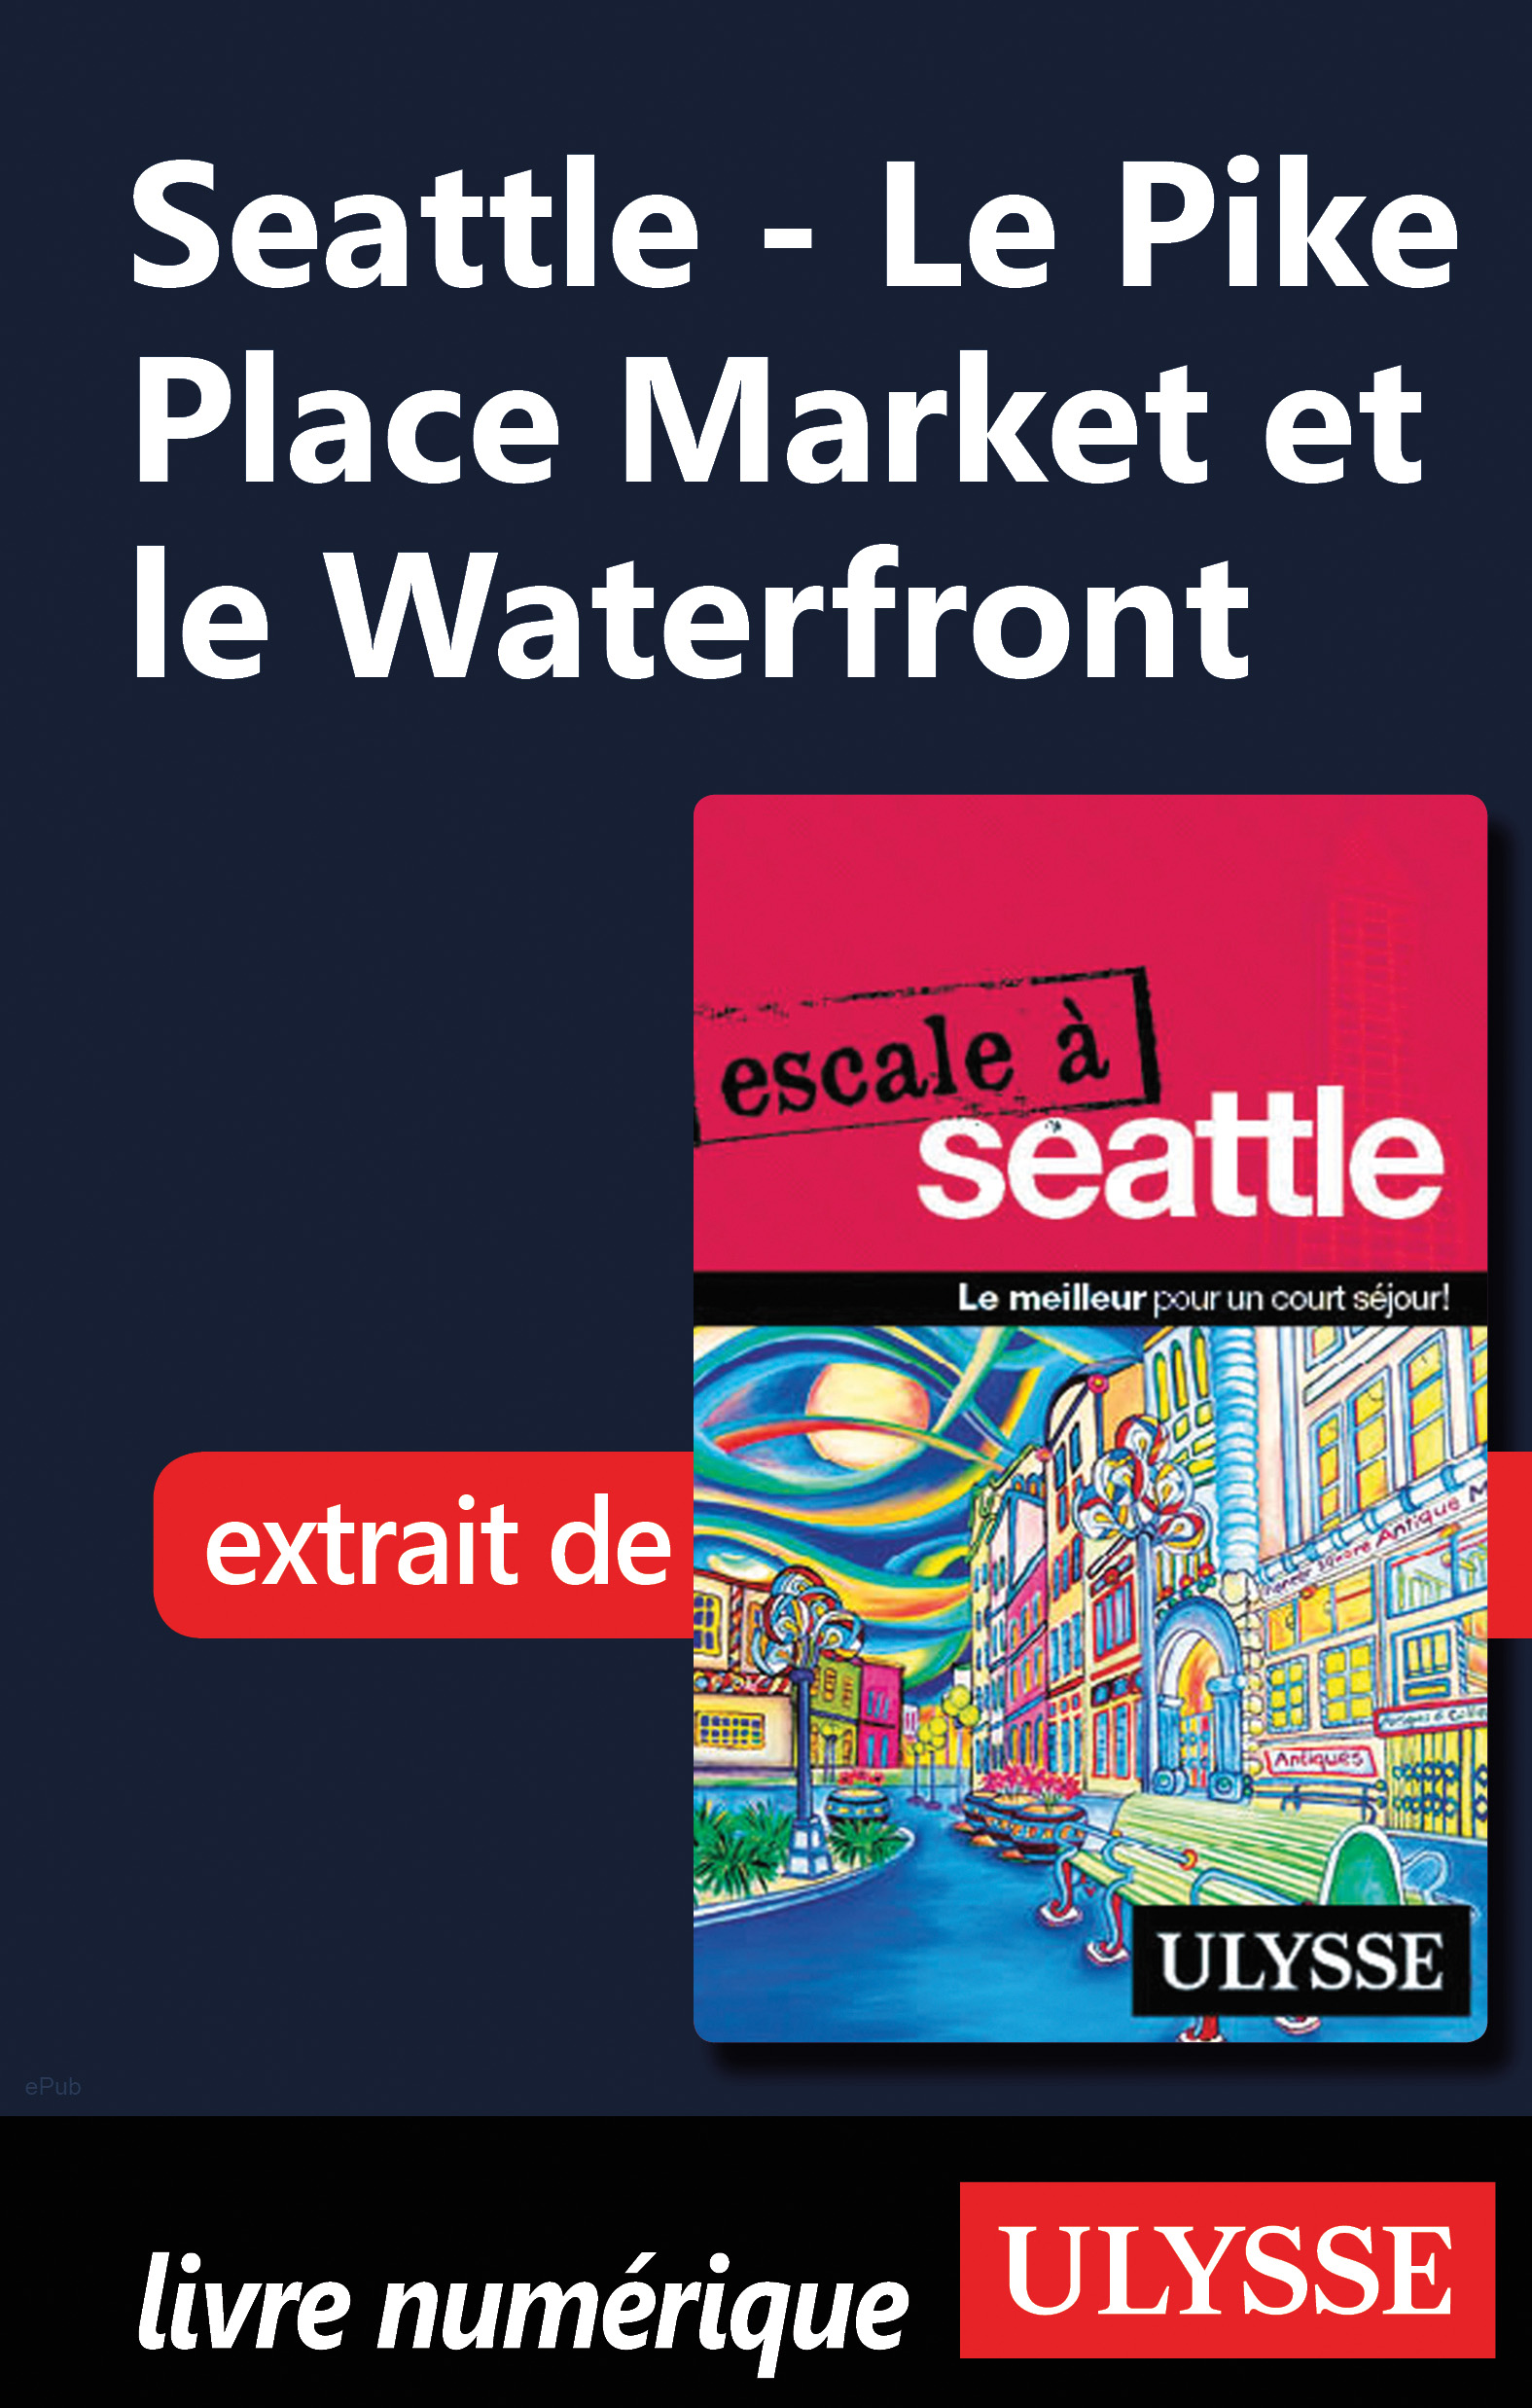 Vignette du livre Seattle - Le Pike Place Market et le Waterfront